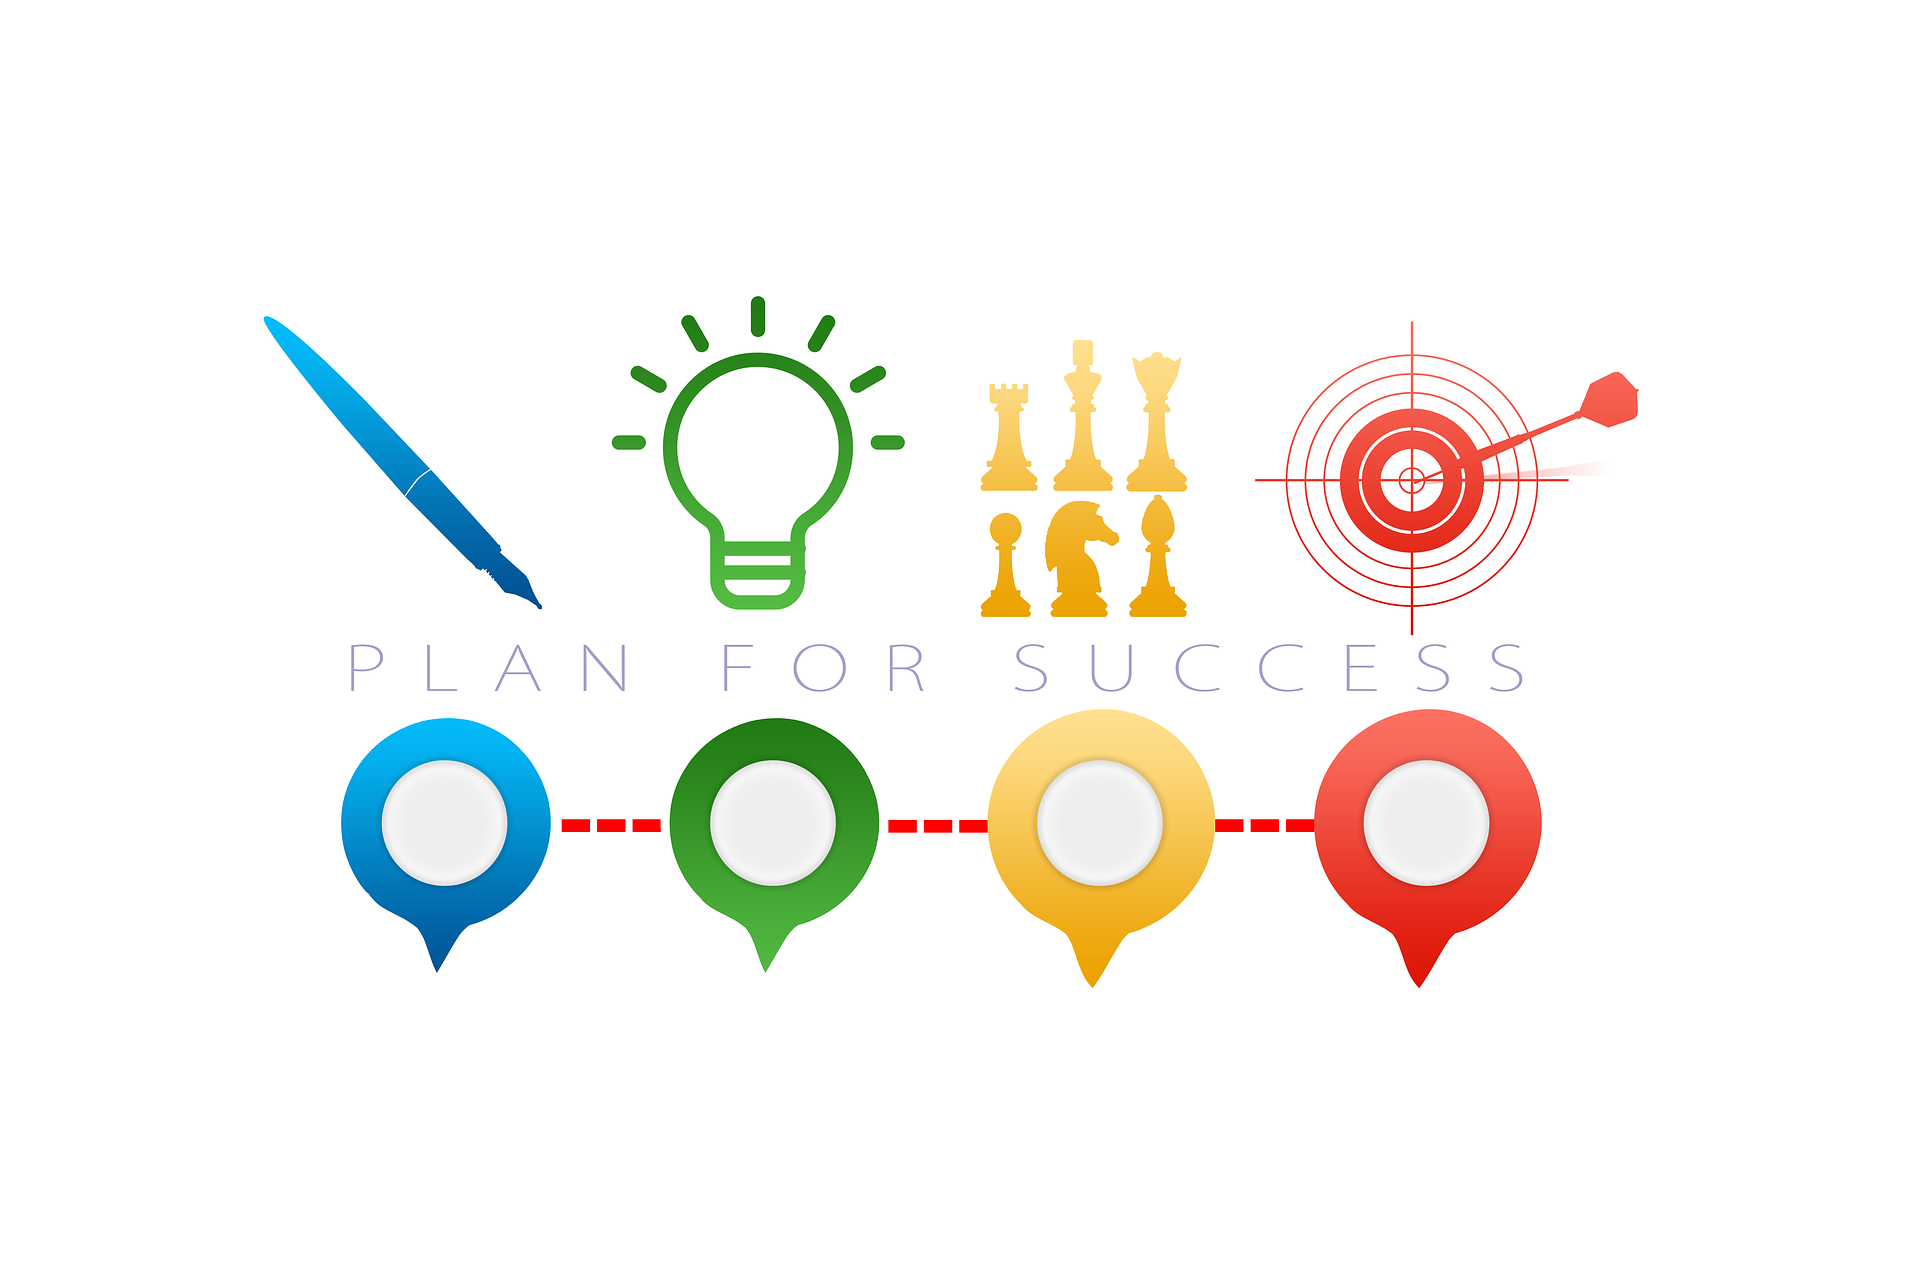 Adopt a Data-Driven Human Capital Development strategy from on-boarding training